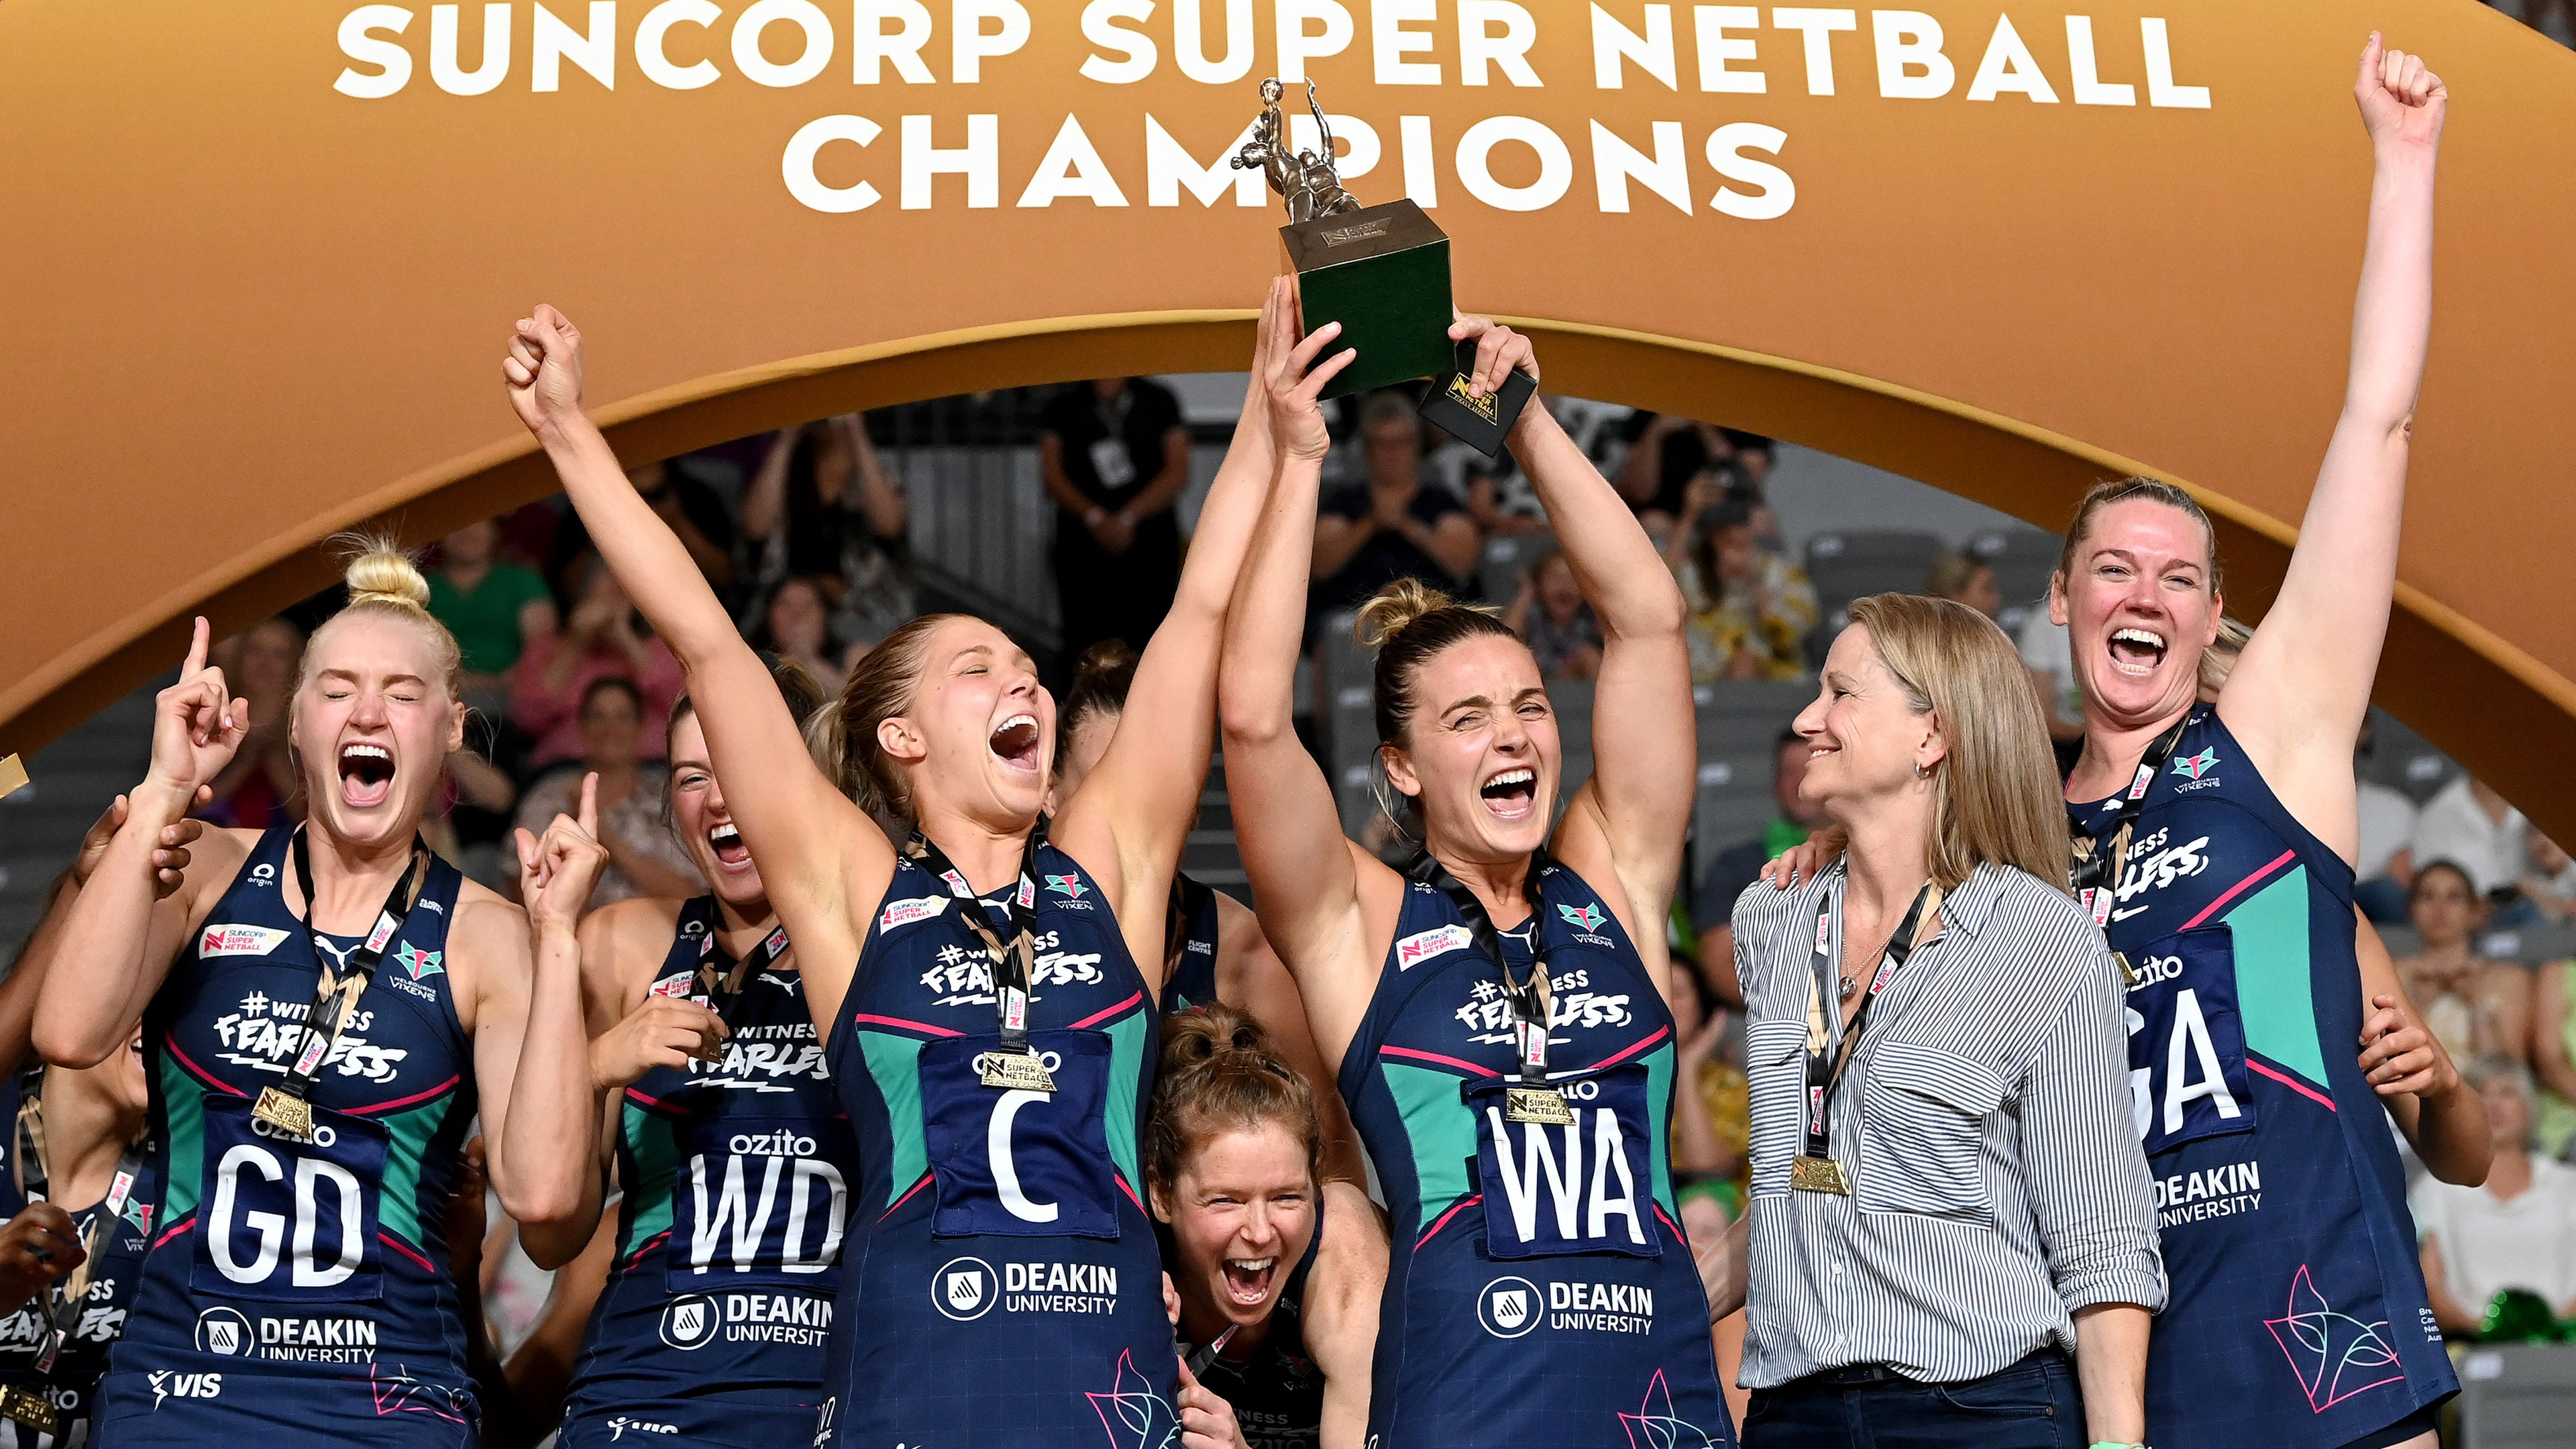 2021 Suncorp Super Netball season start date and Grand Final date officially locked in